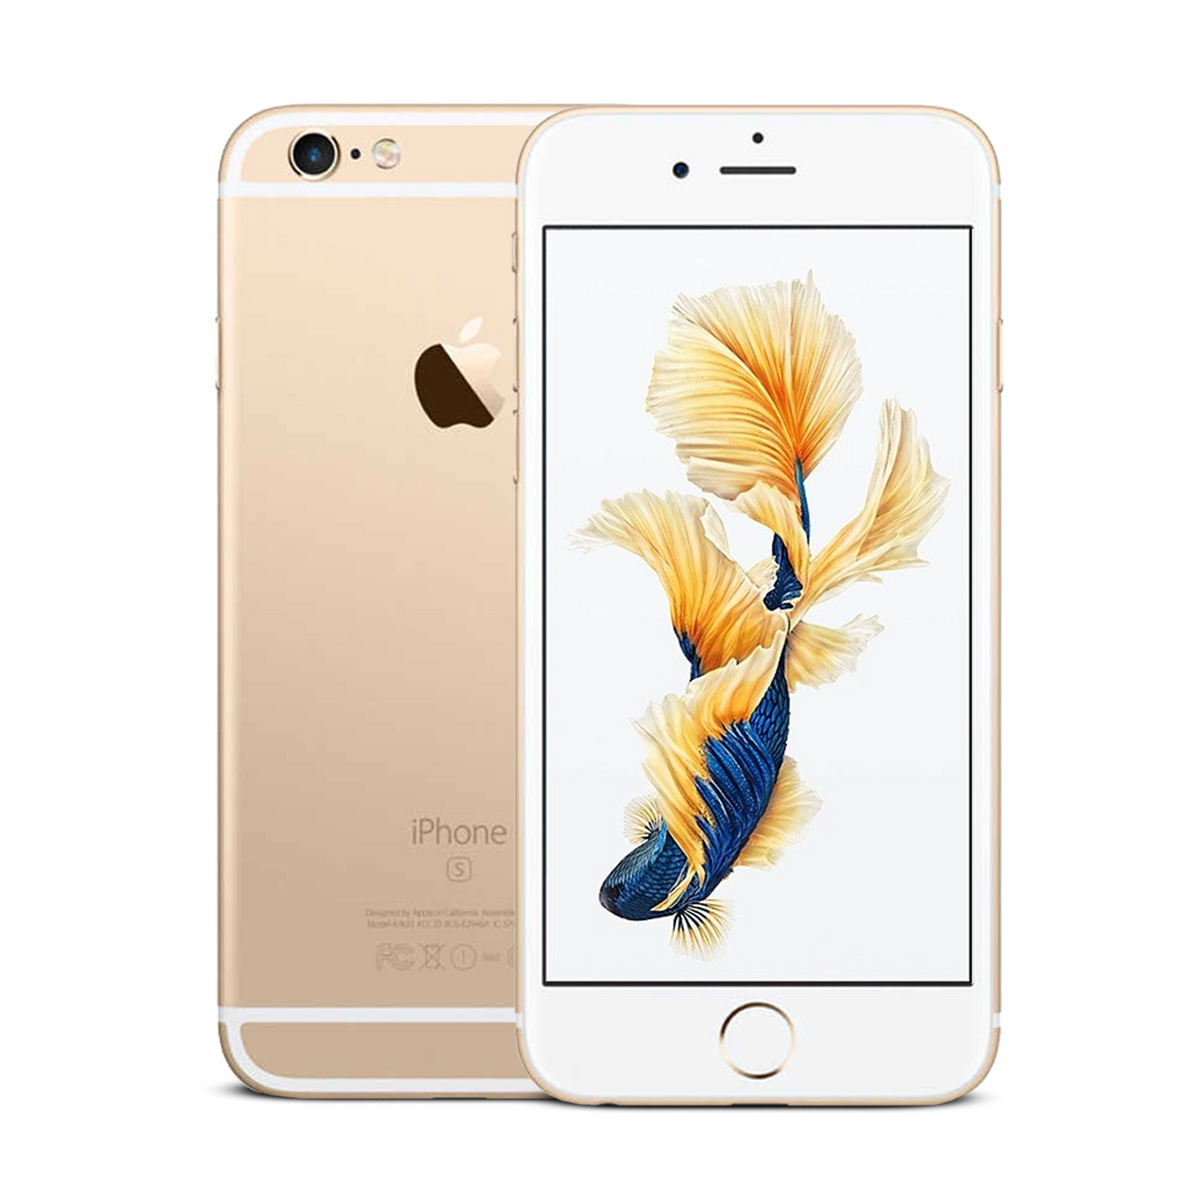 iPhone 6s 16GB Gold | Very Good